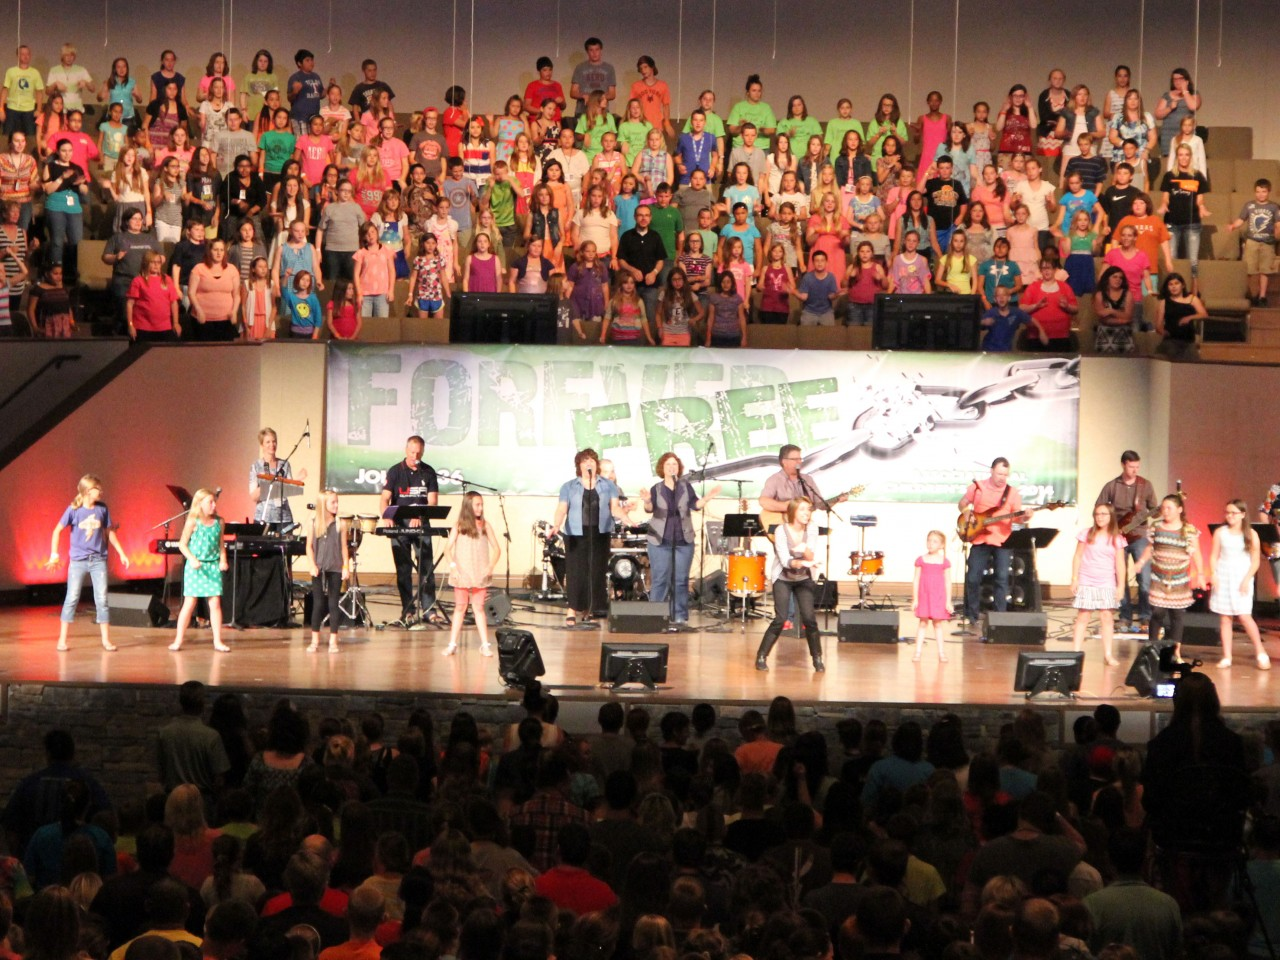 ACC sees great response numbers,  as Falls Creek begins summer events